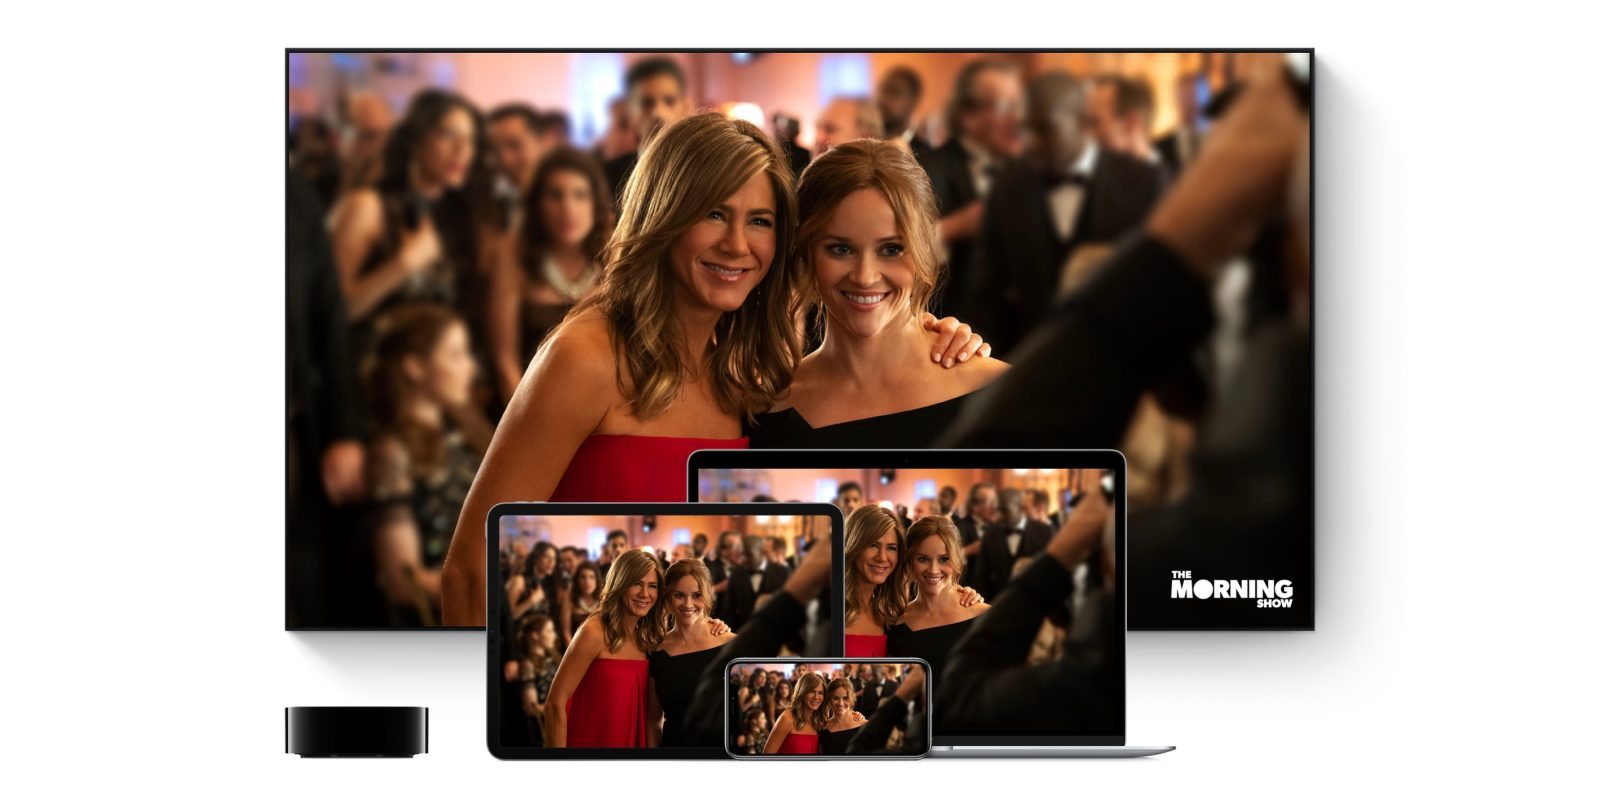 Where to watch the Apple TV app: iPhone, iPad, Mac, Roku, smart TVs and more